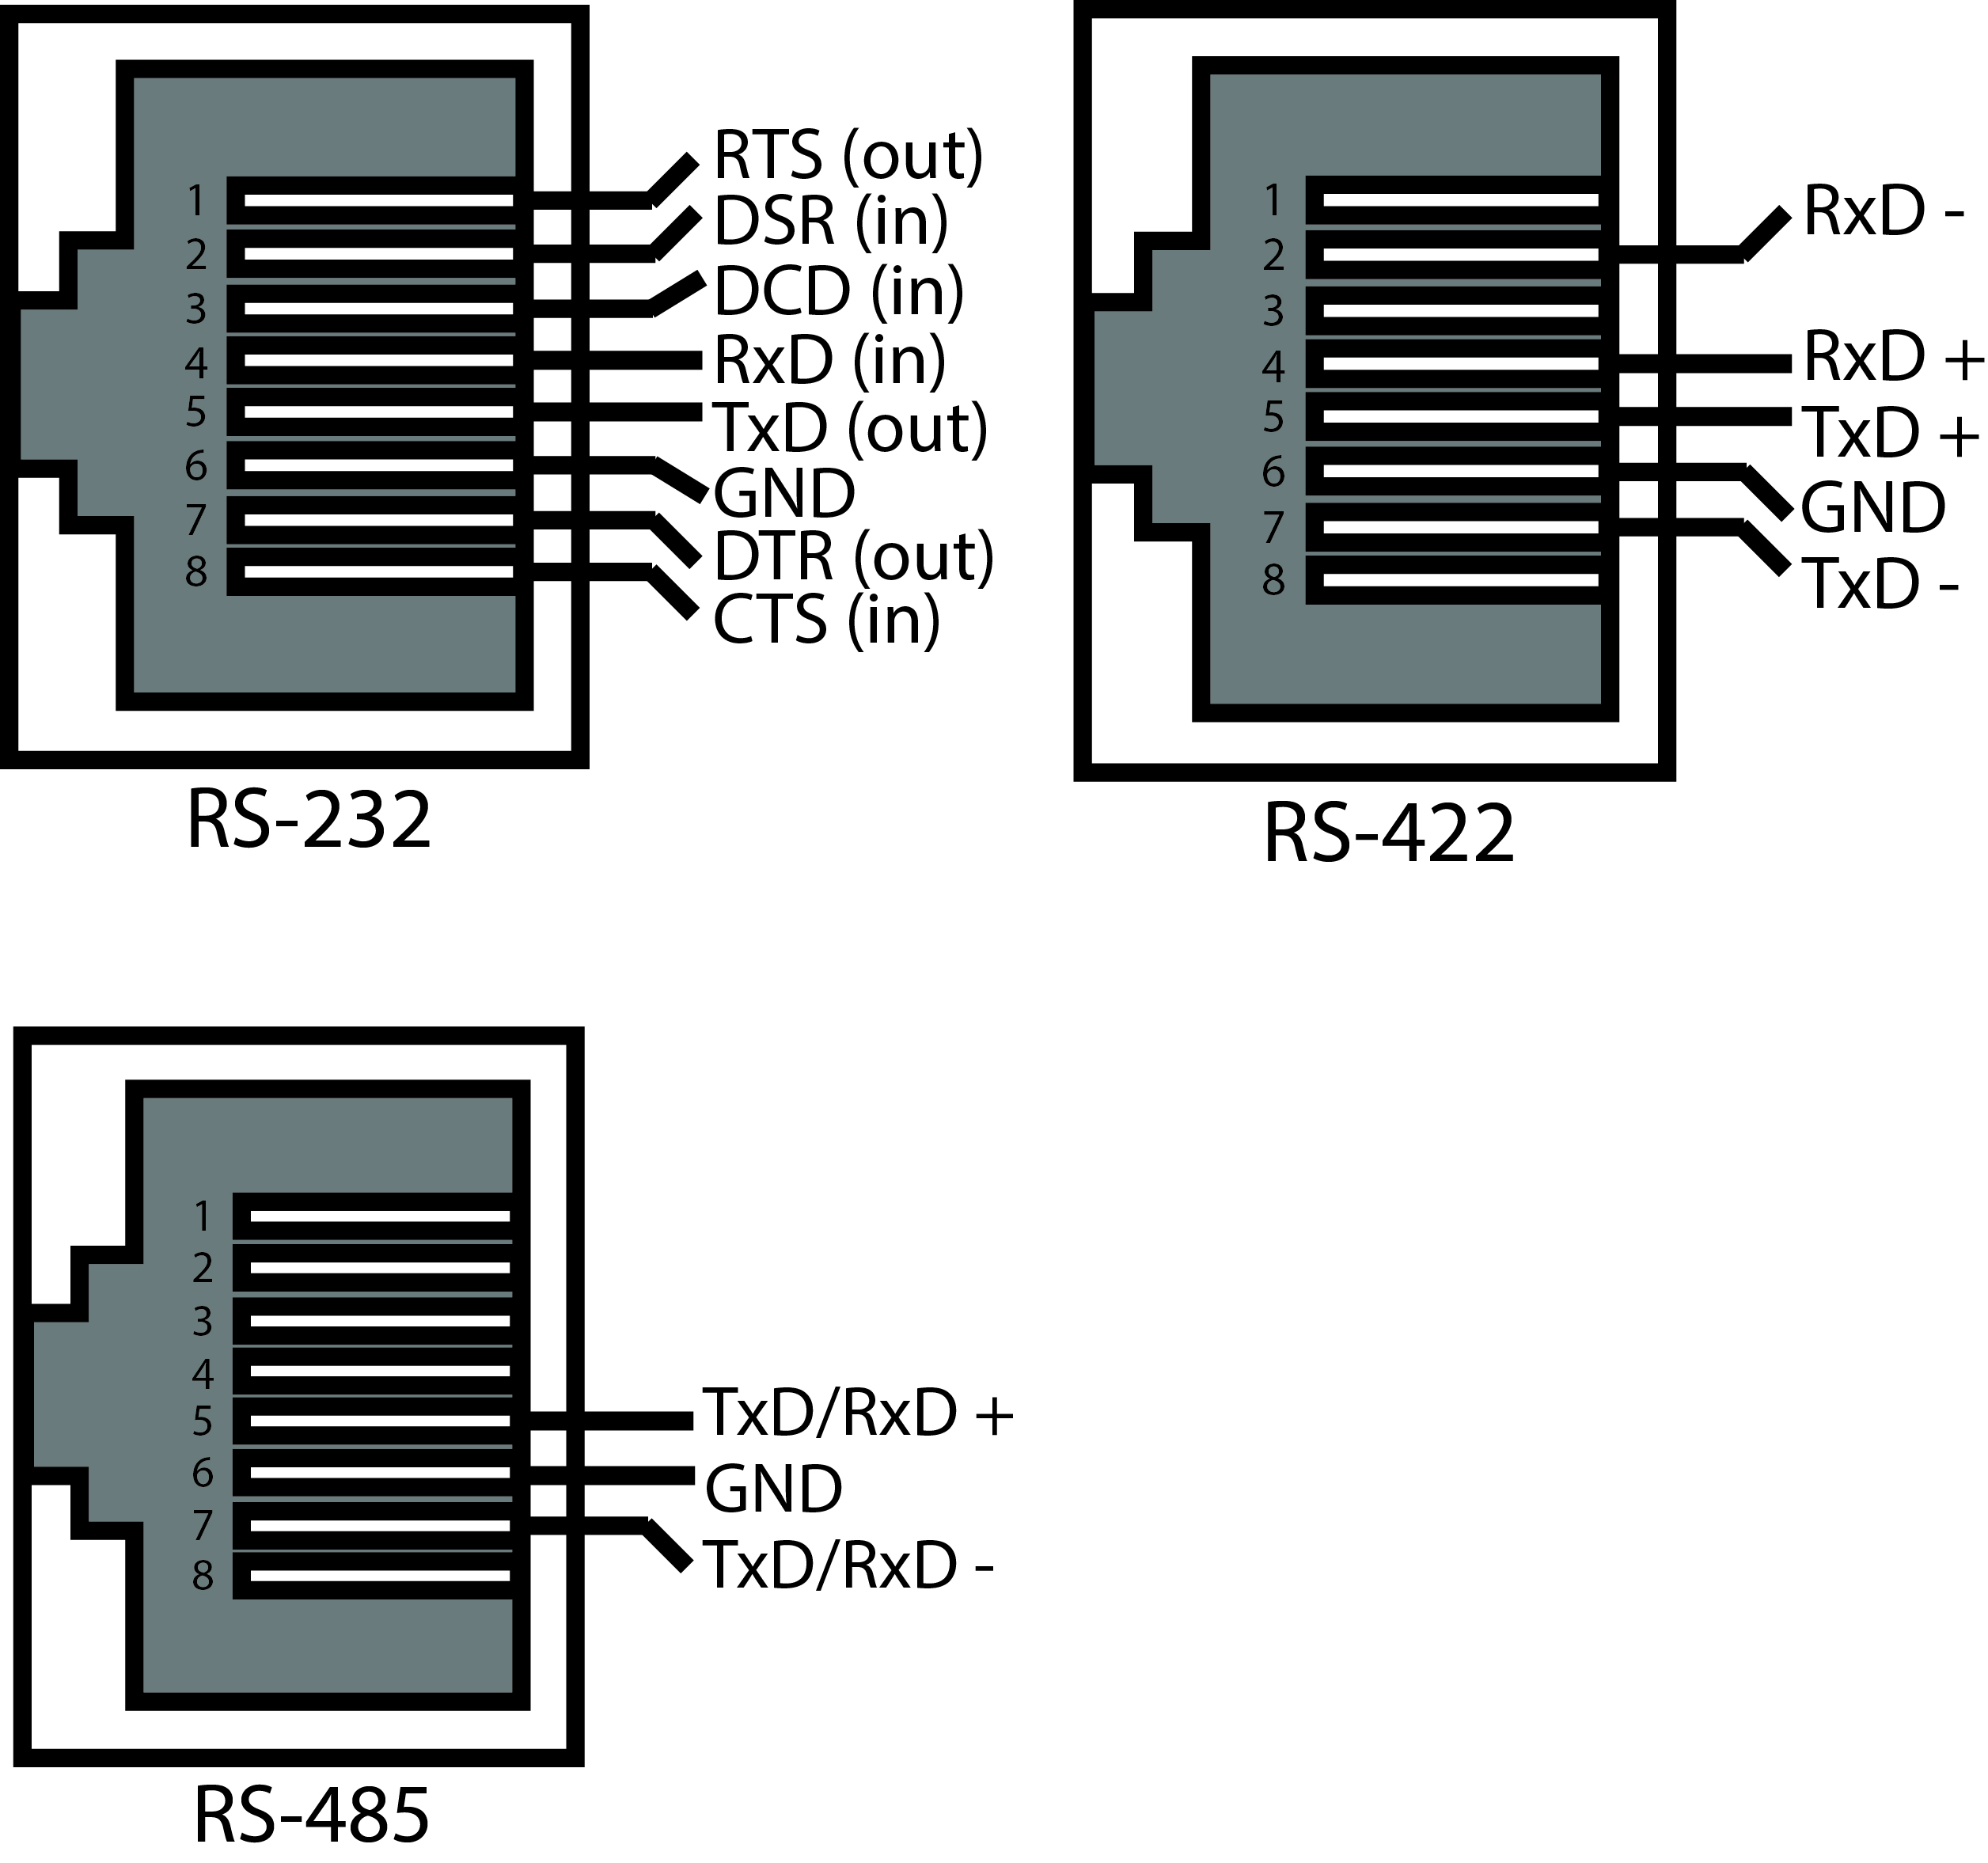 rj45 connector wiring diagram for a leviton dimmer switch rs485 pinout to free engine